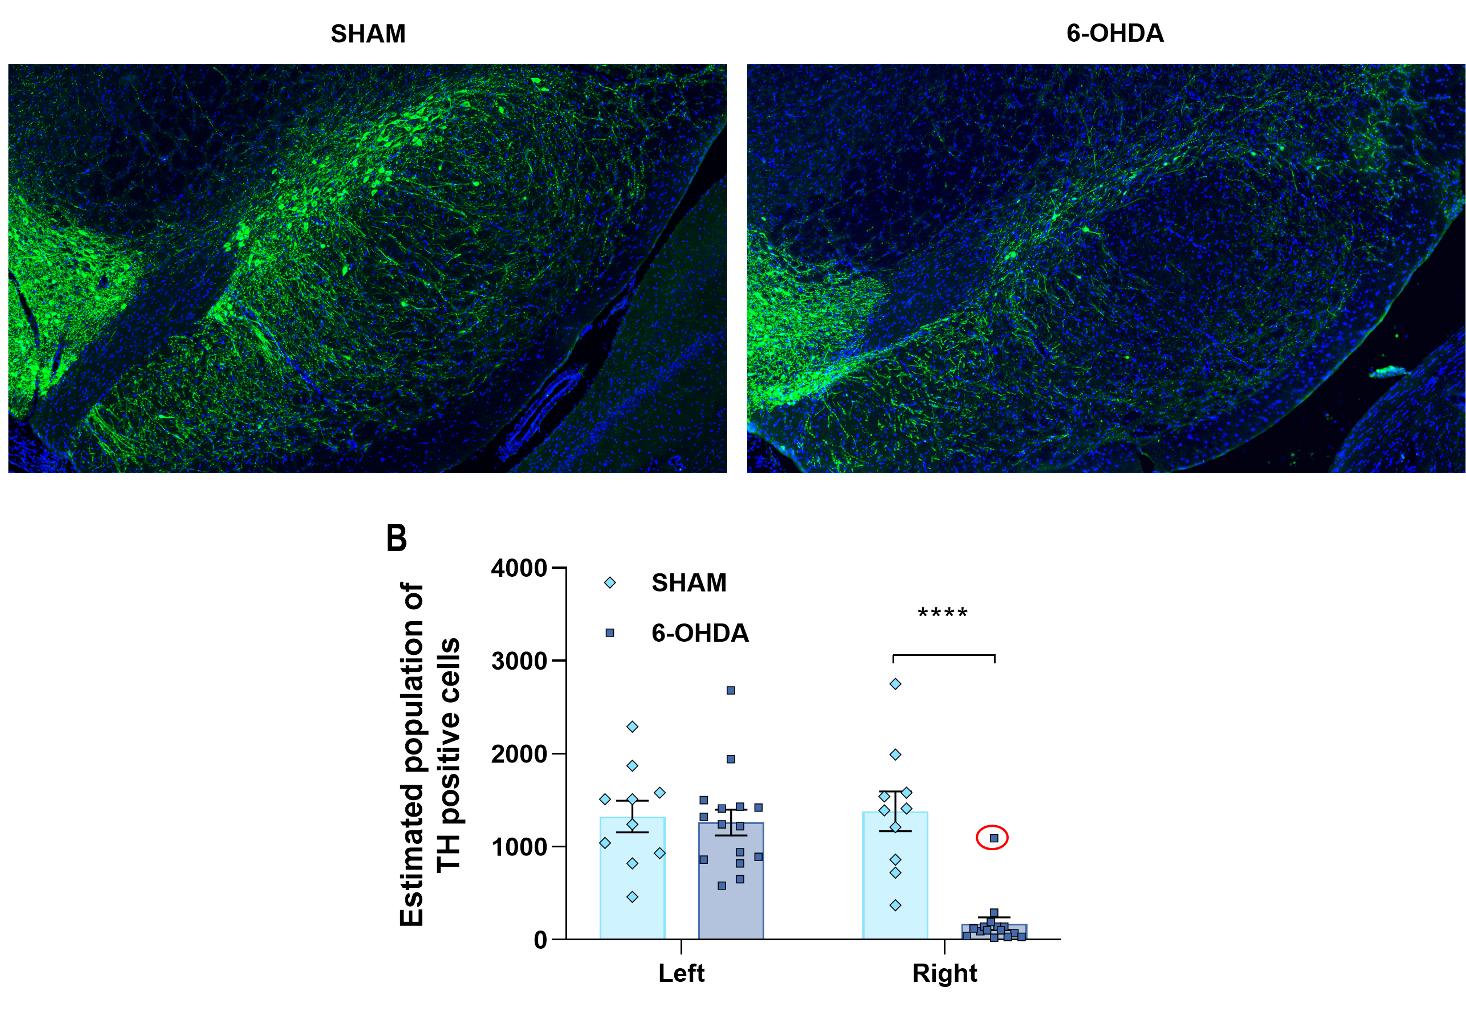 Immunohistochemistry of striatum of Vehicle versus 6-OHDA treatment groups and a graph of the quantification of these two groups.